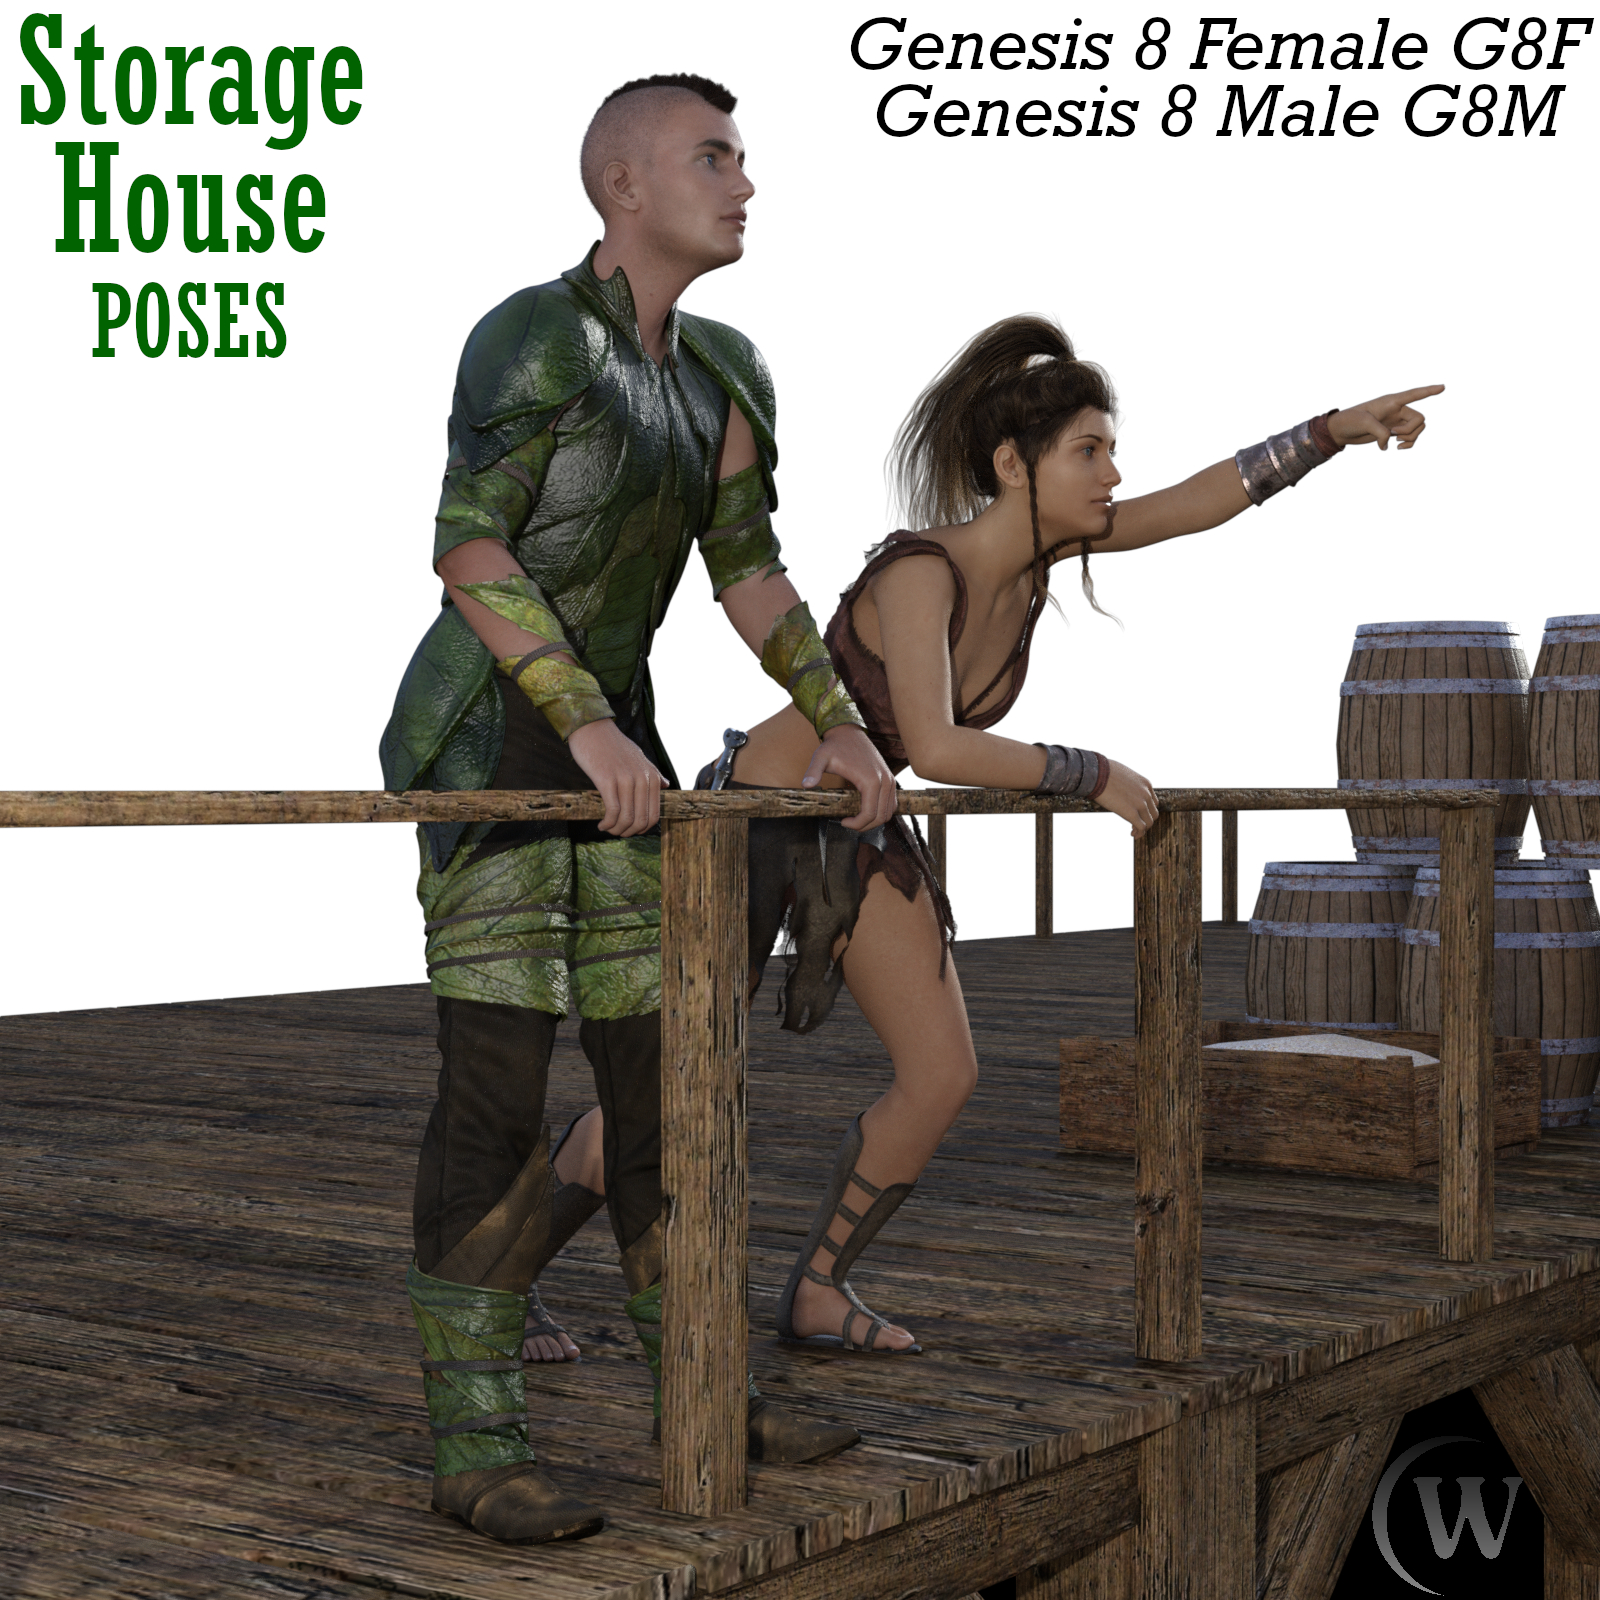 STORAGE HOUSE Poses for Genesis 8 Female and Genesis 8 Male